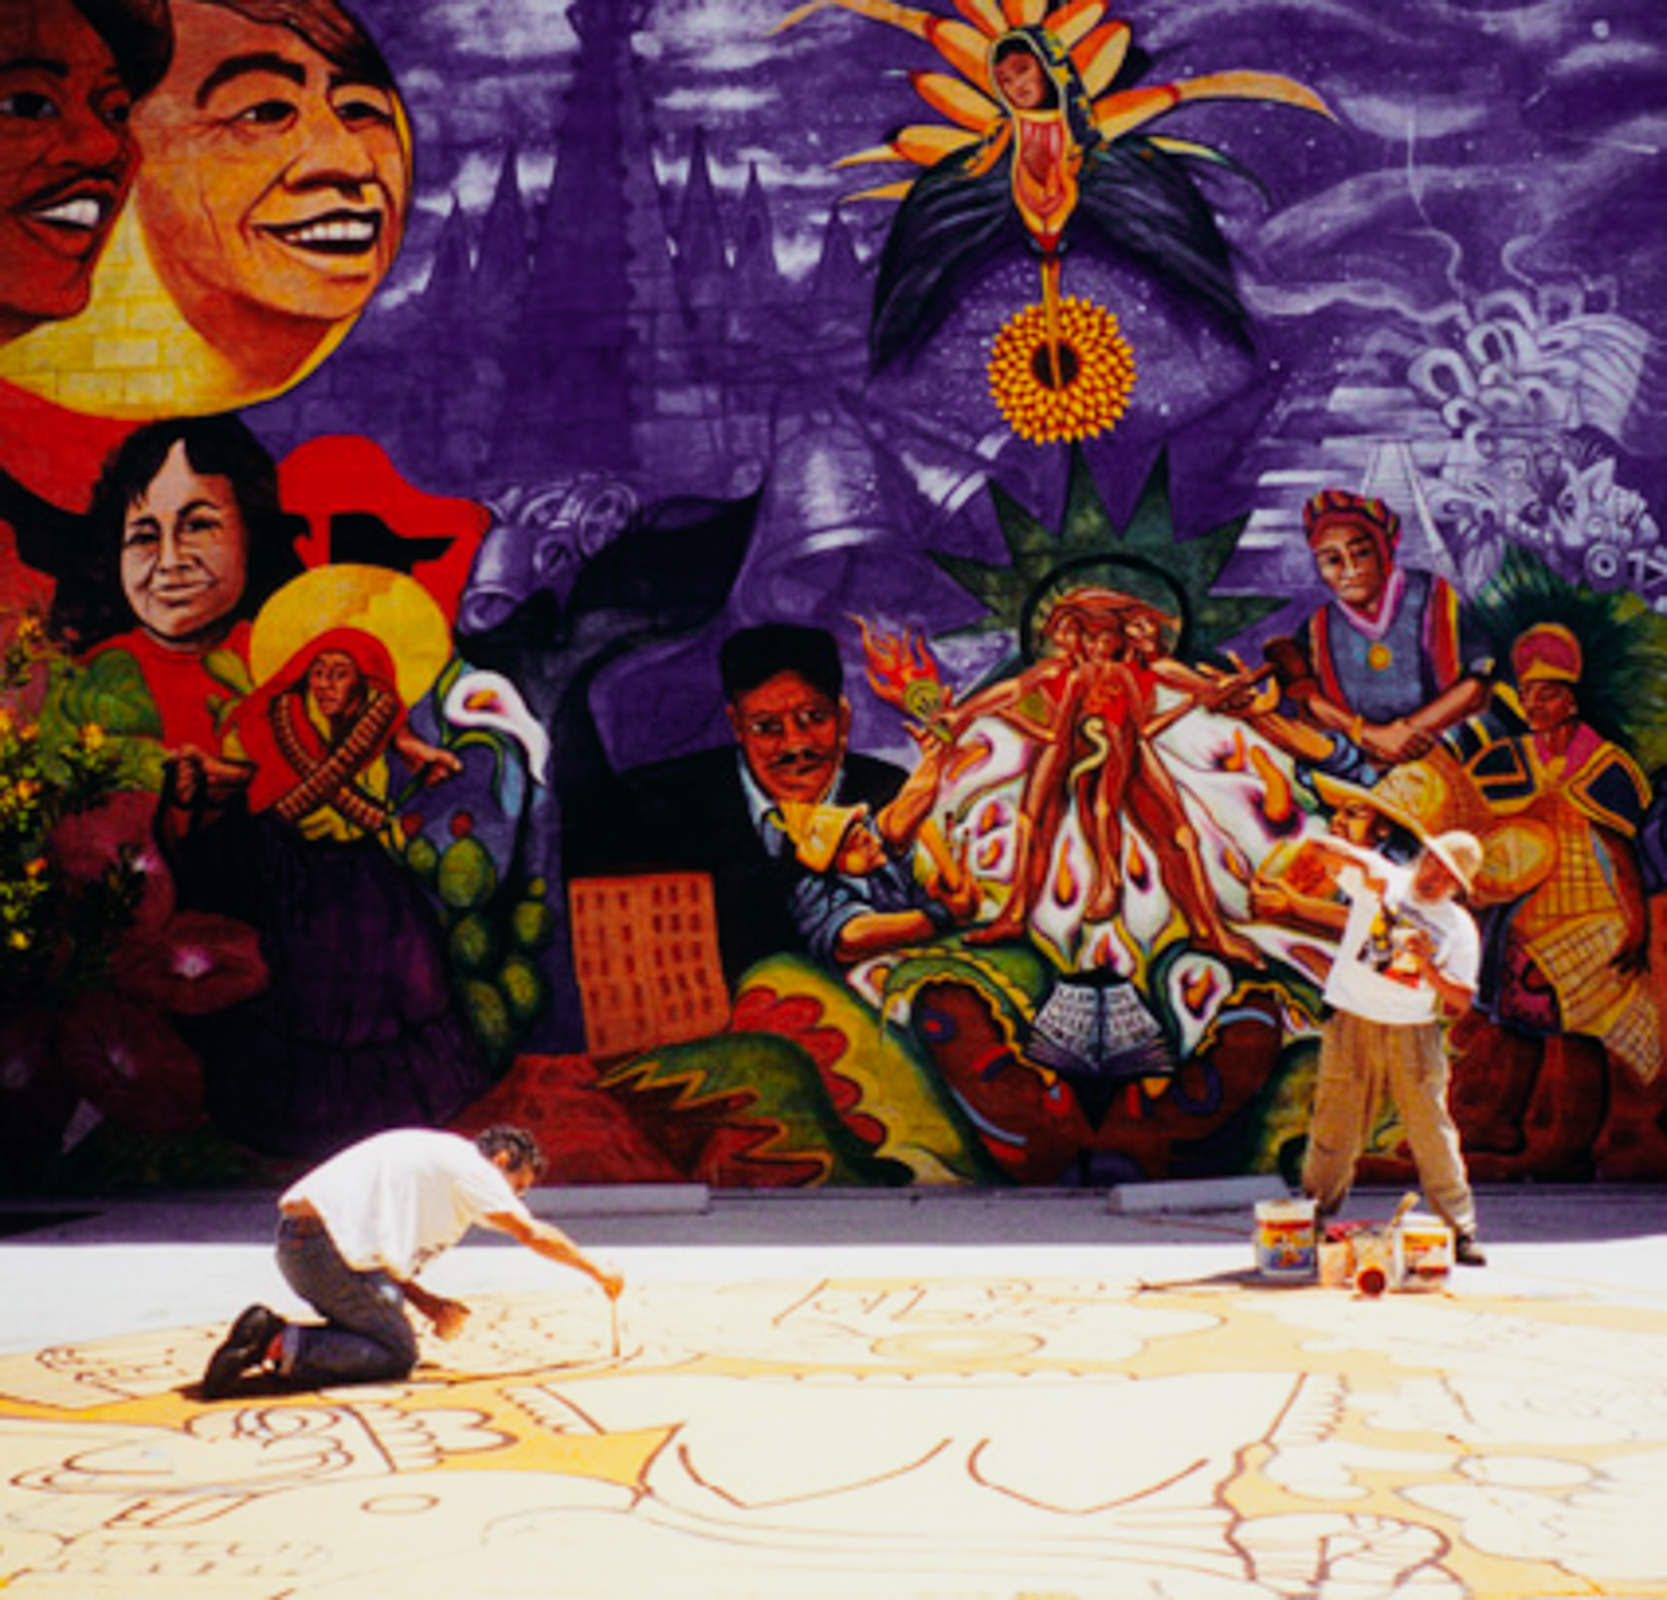 Visiones: Latino Arts and Culture for Individuals and Teachers